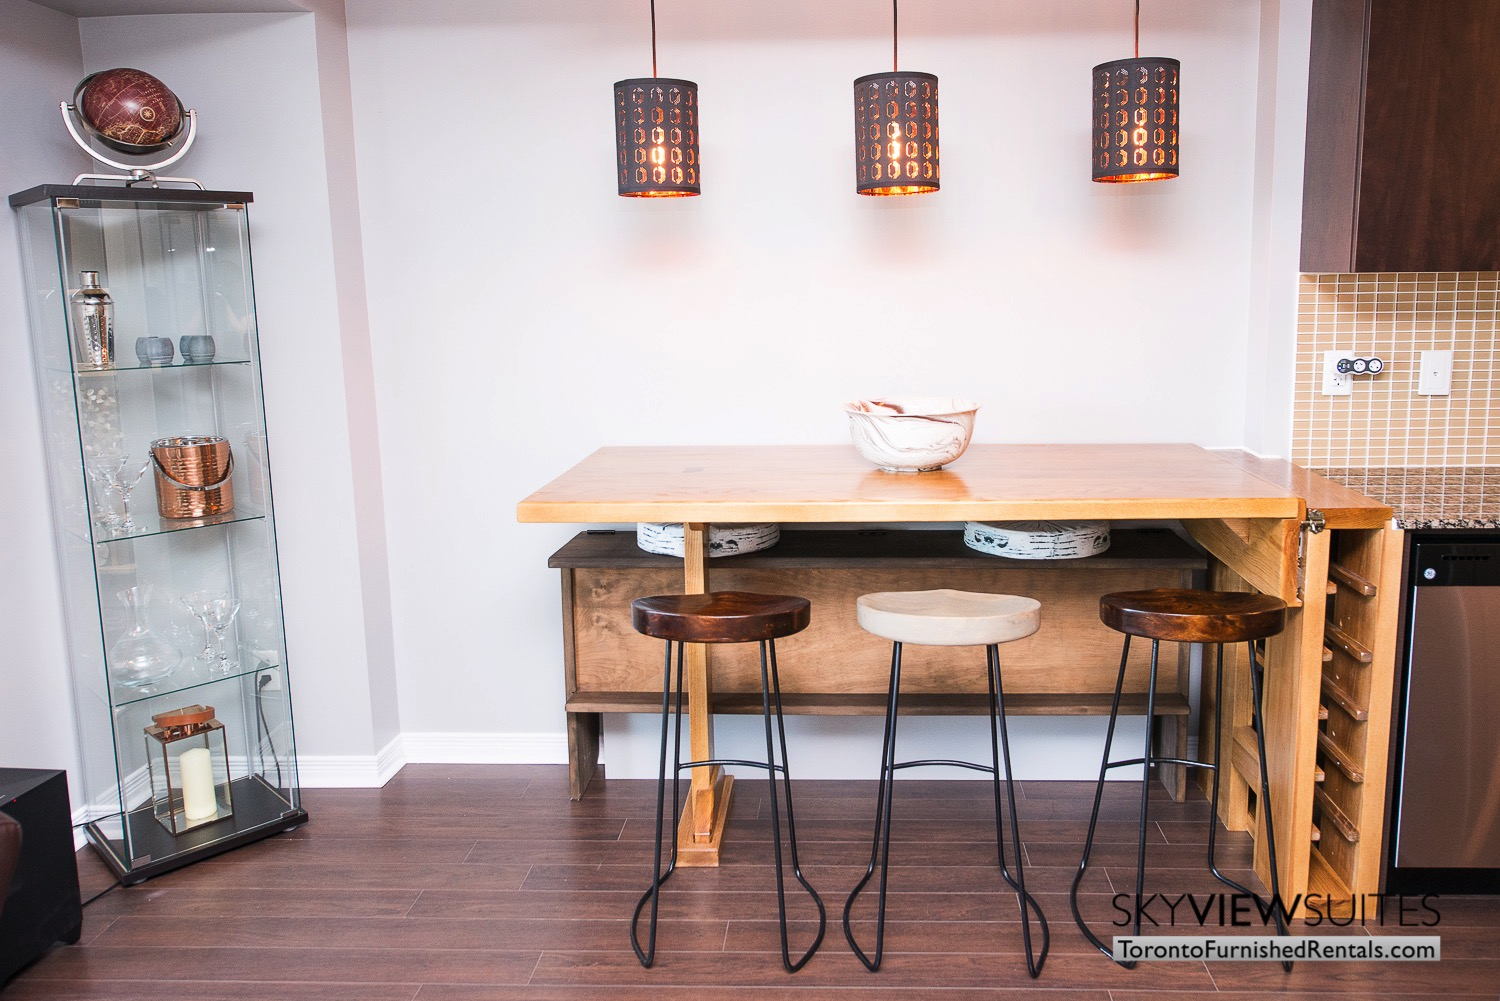 352 Front St. W., Toronto furnished rental dining room with barstools